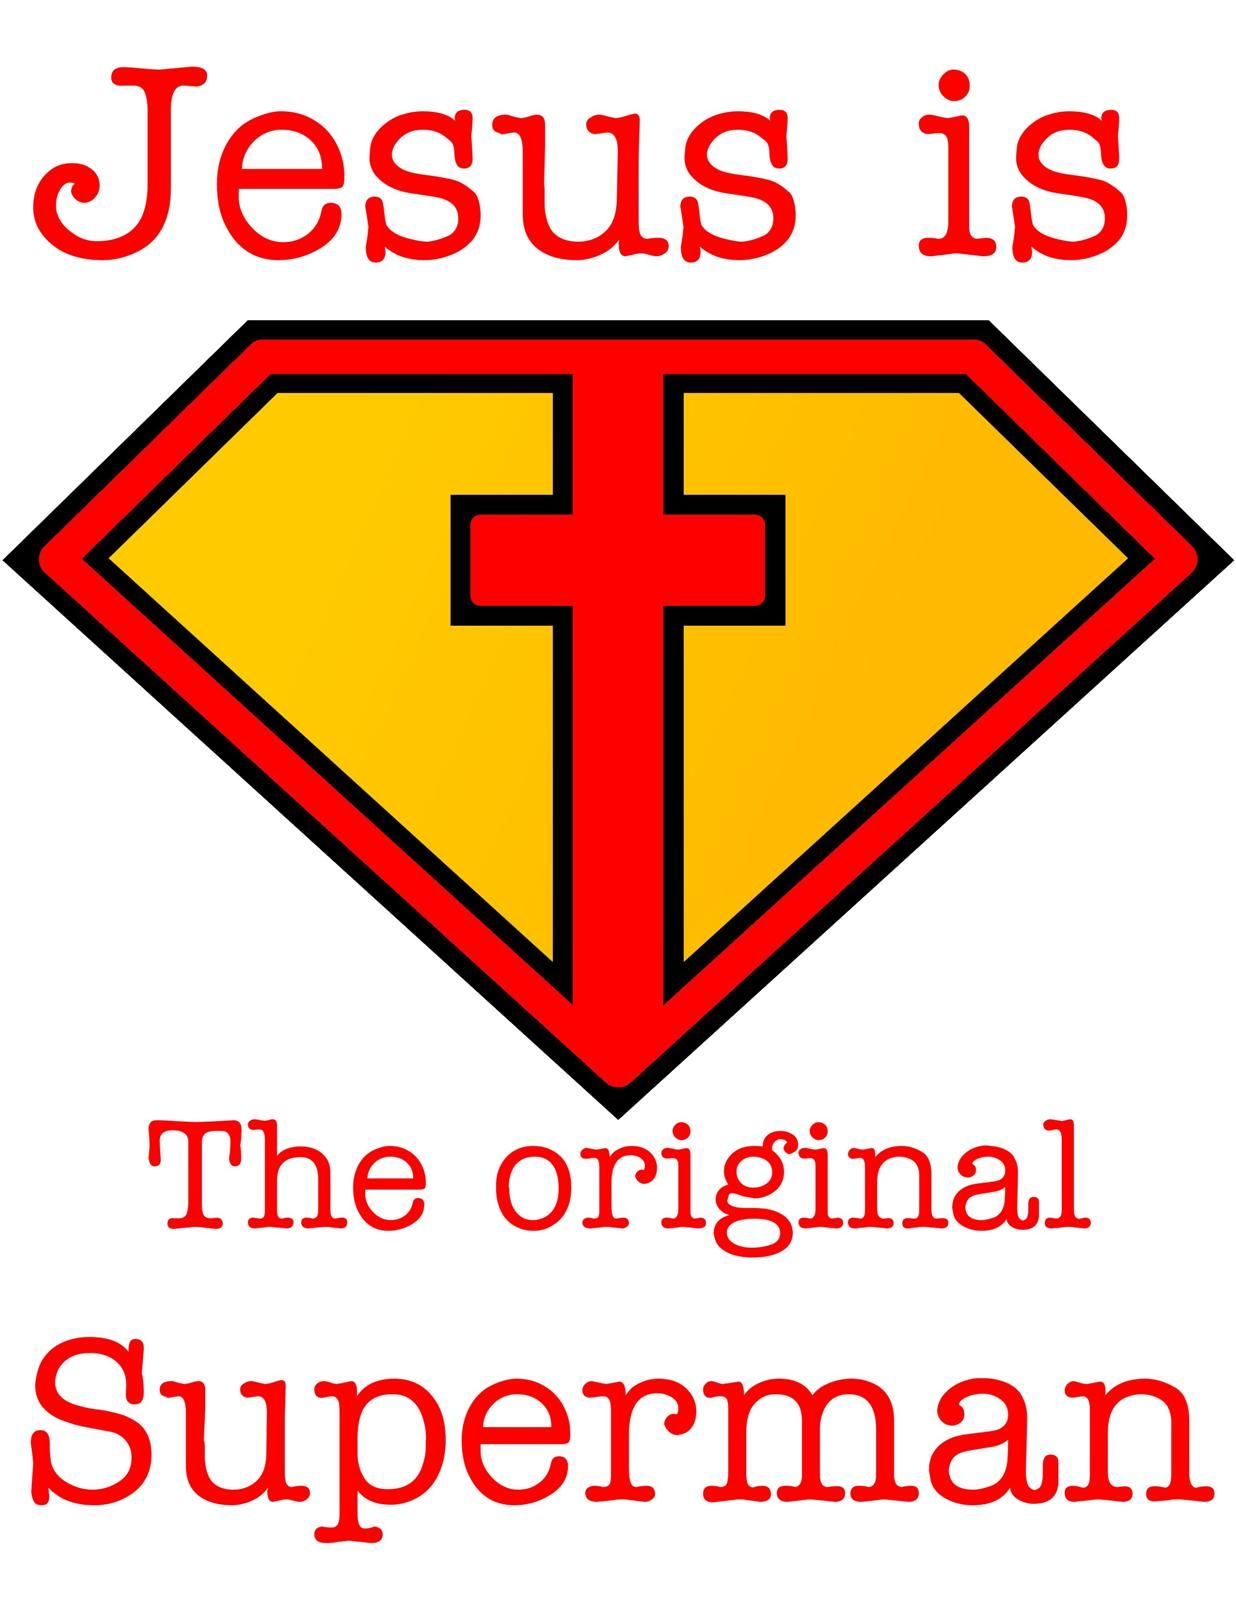 Google chrome themes jesus christ - Superman Is A Type Of The Jews Messiah Whom Christians Know Is Jesus Y Shua Note The World Likes To Elevate Batman Who Represents Our Max Human